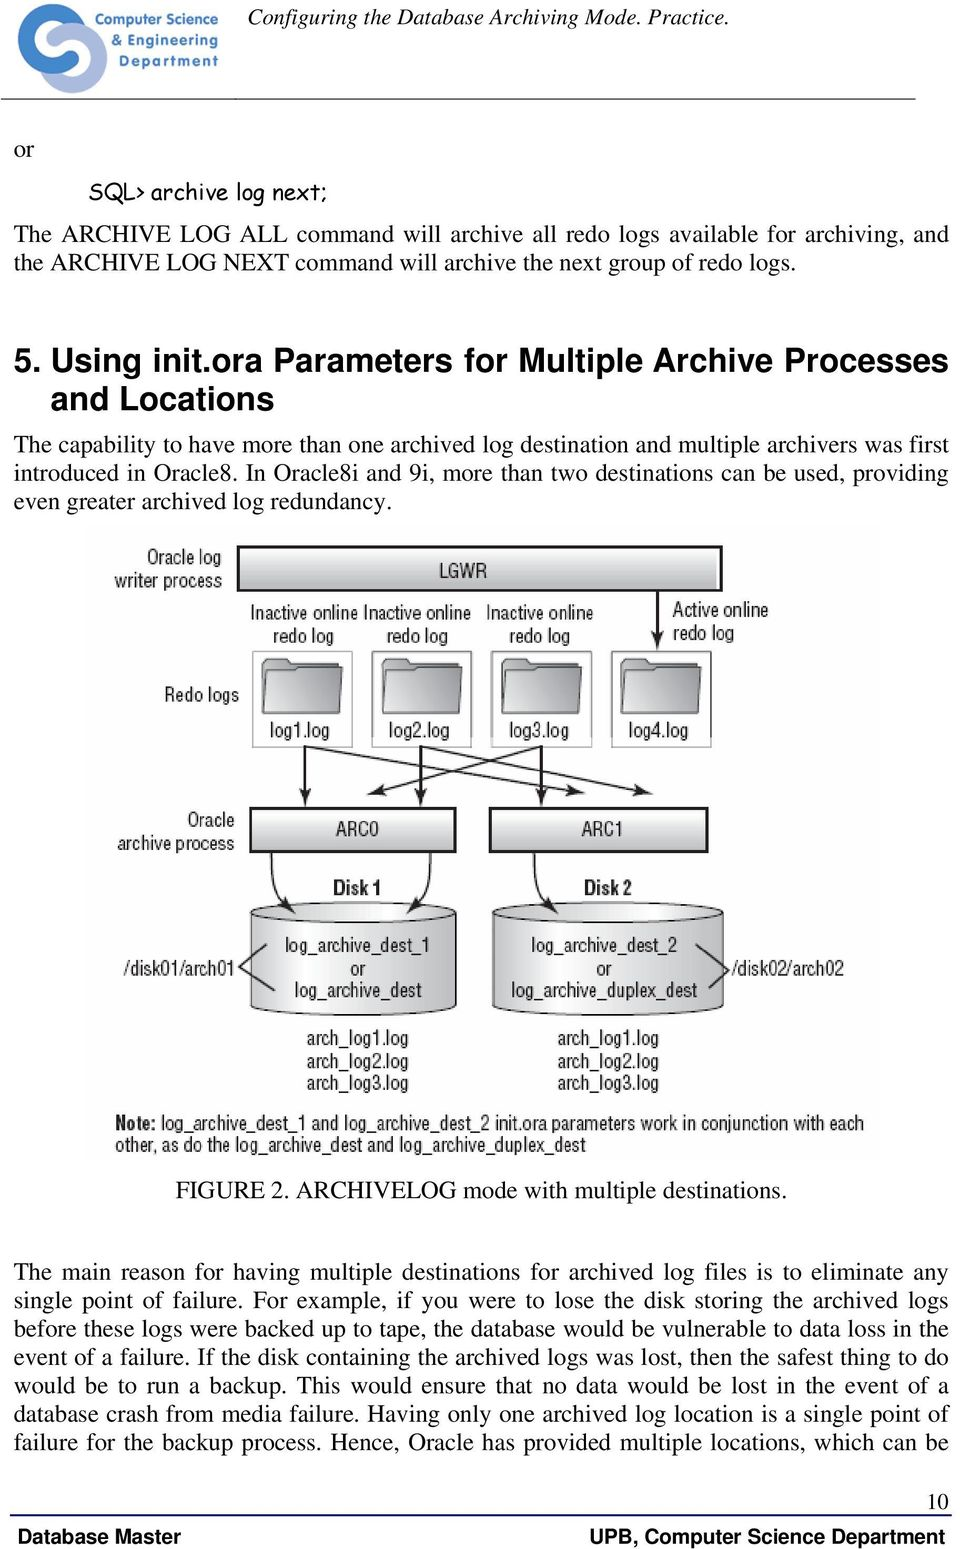 In Oracle8i and 9i, more than two destinations can be used, providing even greater archived log redundancy. FIGURE 2. ARCHIVELOG mode with multiple destinations.